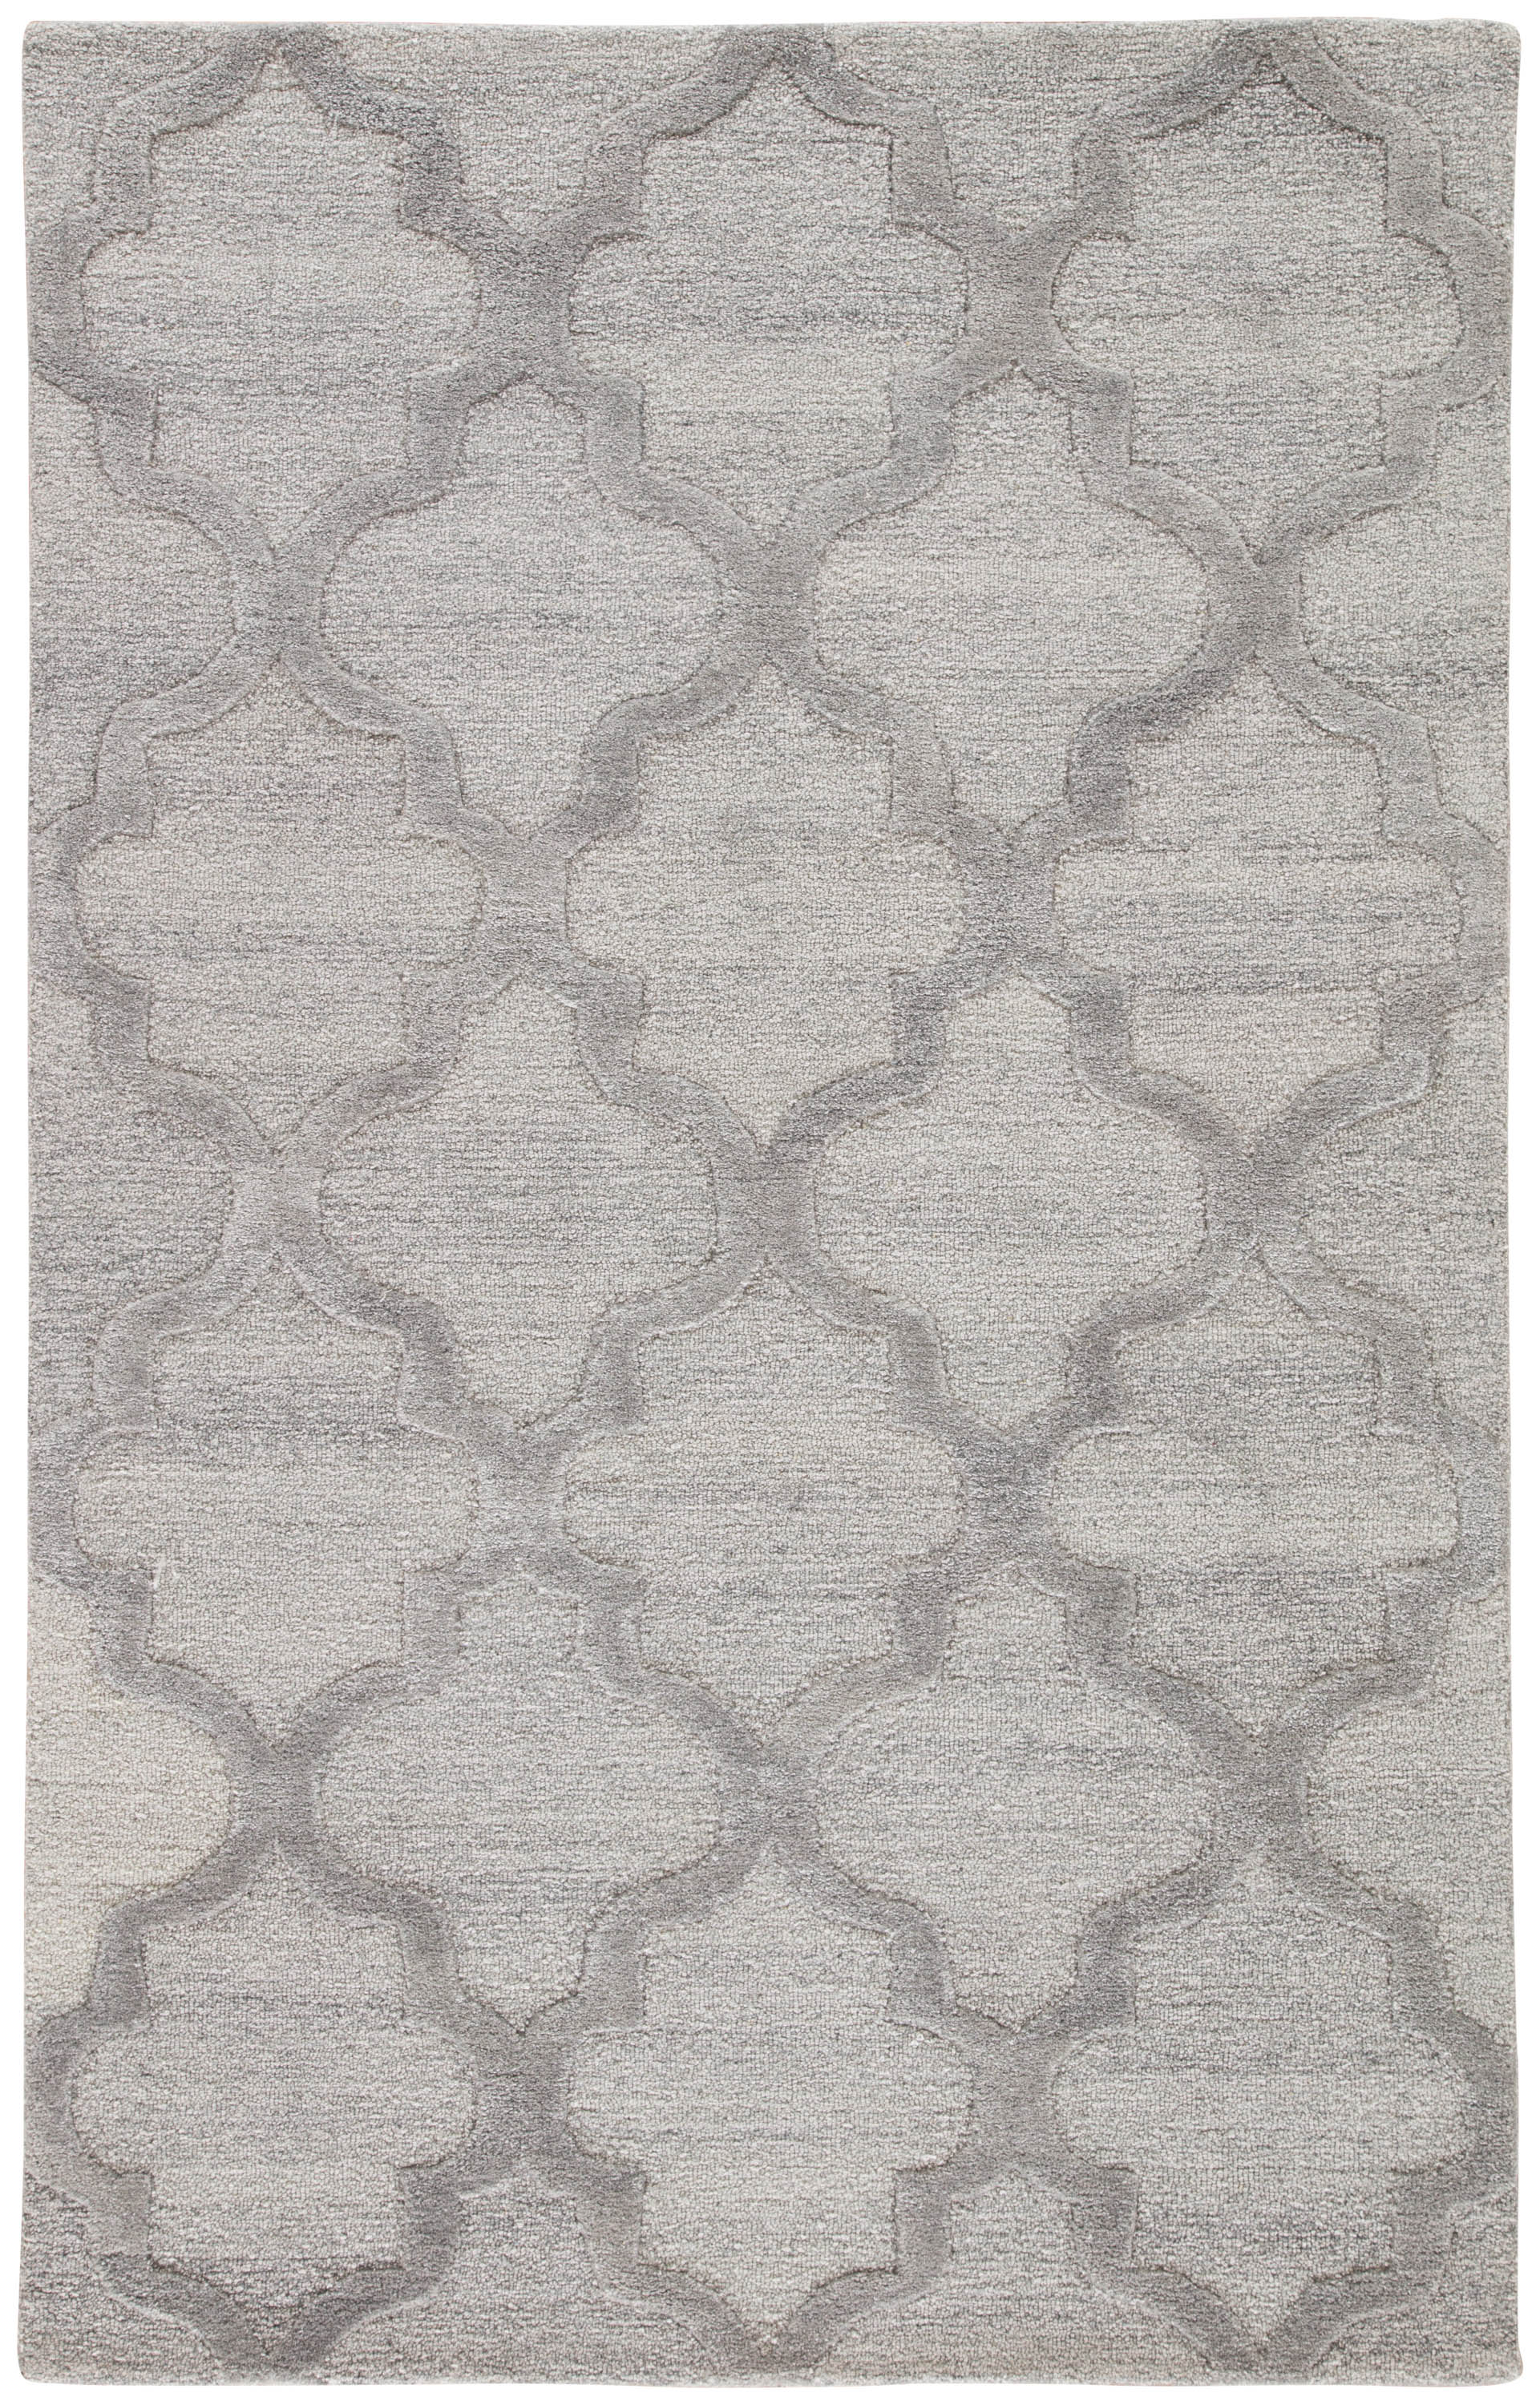 Rectangle, Round, Square Gray Trellis Hand Tufted Blends Persian & Moroccan recommended for Kitchen, Bedroom, Bathroom, Dining Room, Office, Hallway, Living Room